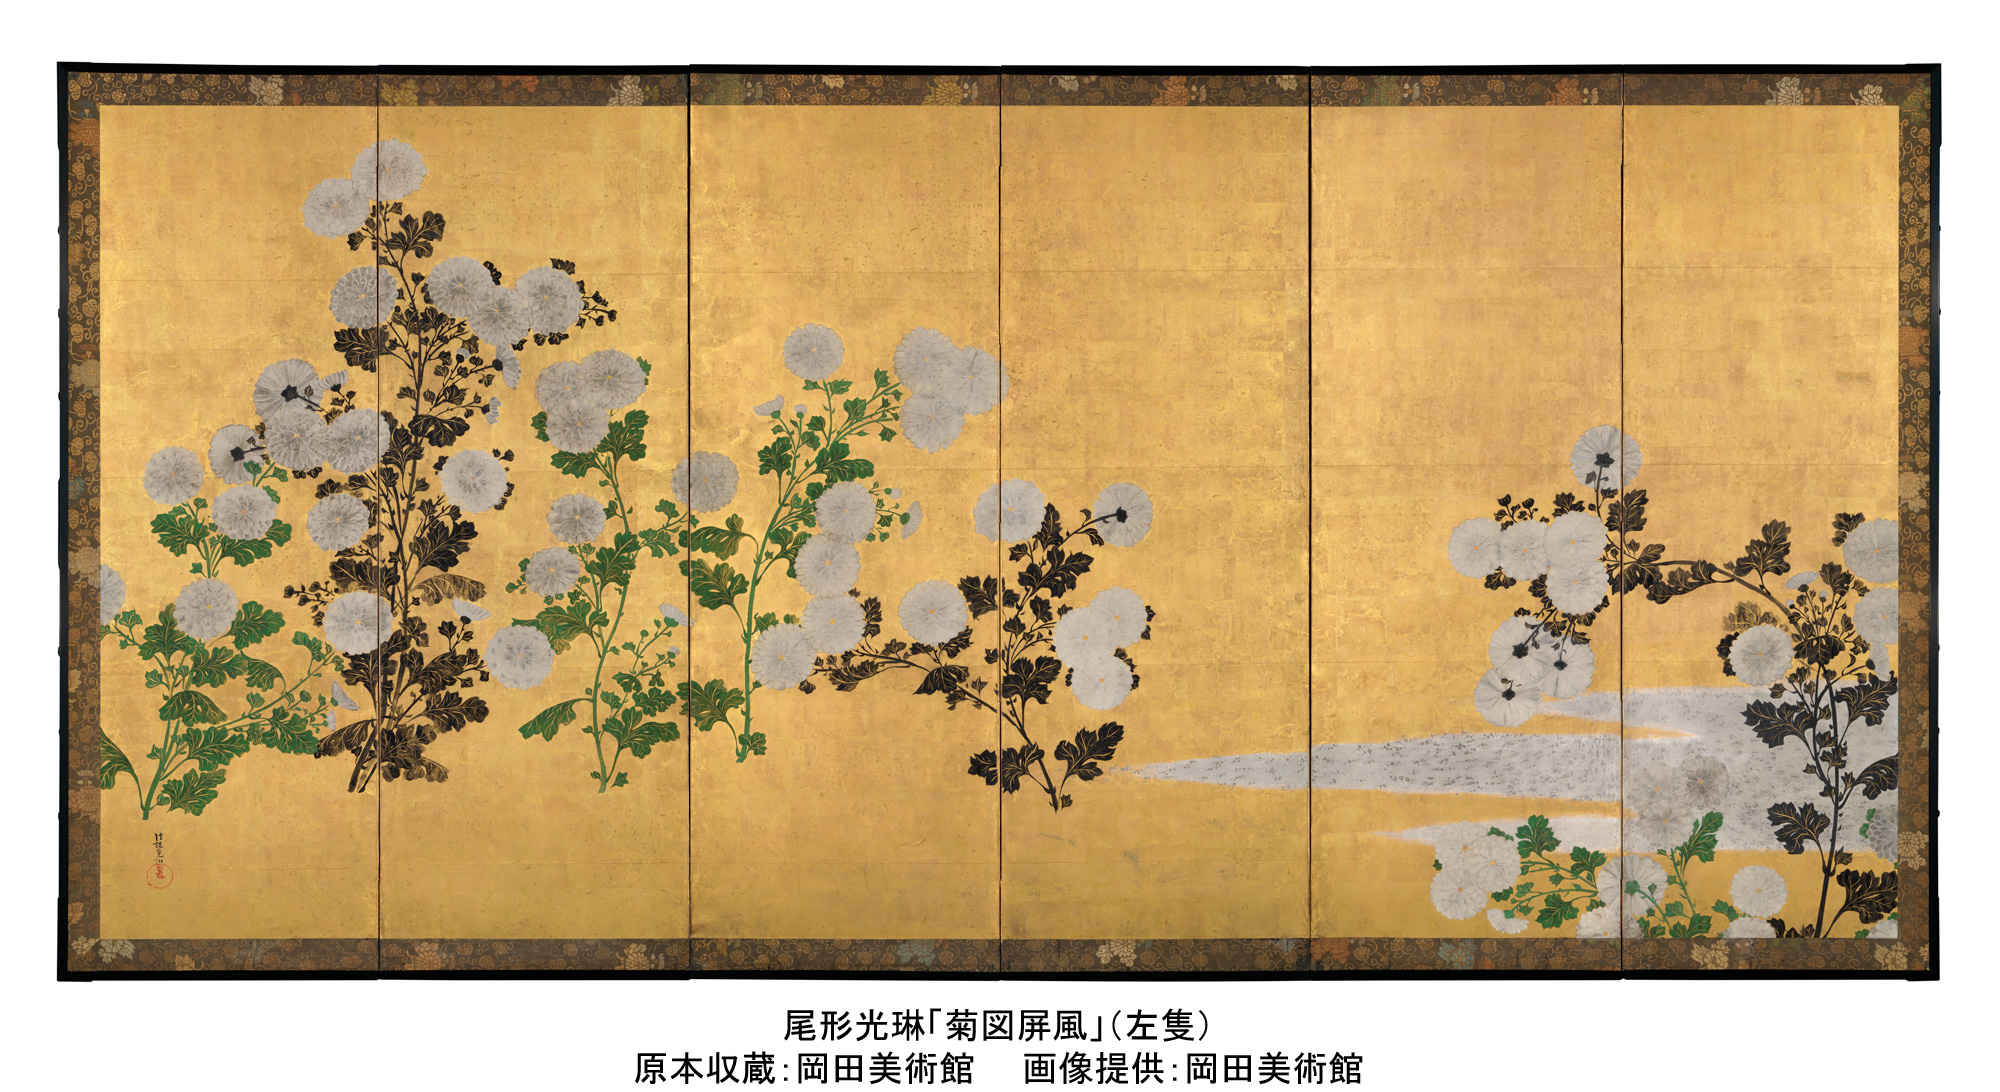 [held postponement] World ... of Hokusai/Hiroshige/sects/ko* - ukiyoe print and gold-leaf folding screen approaching with huge picture